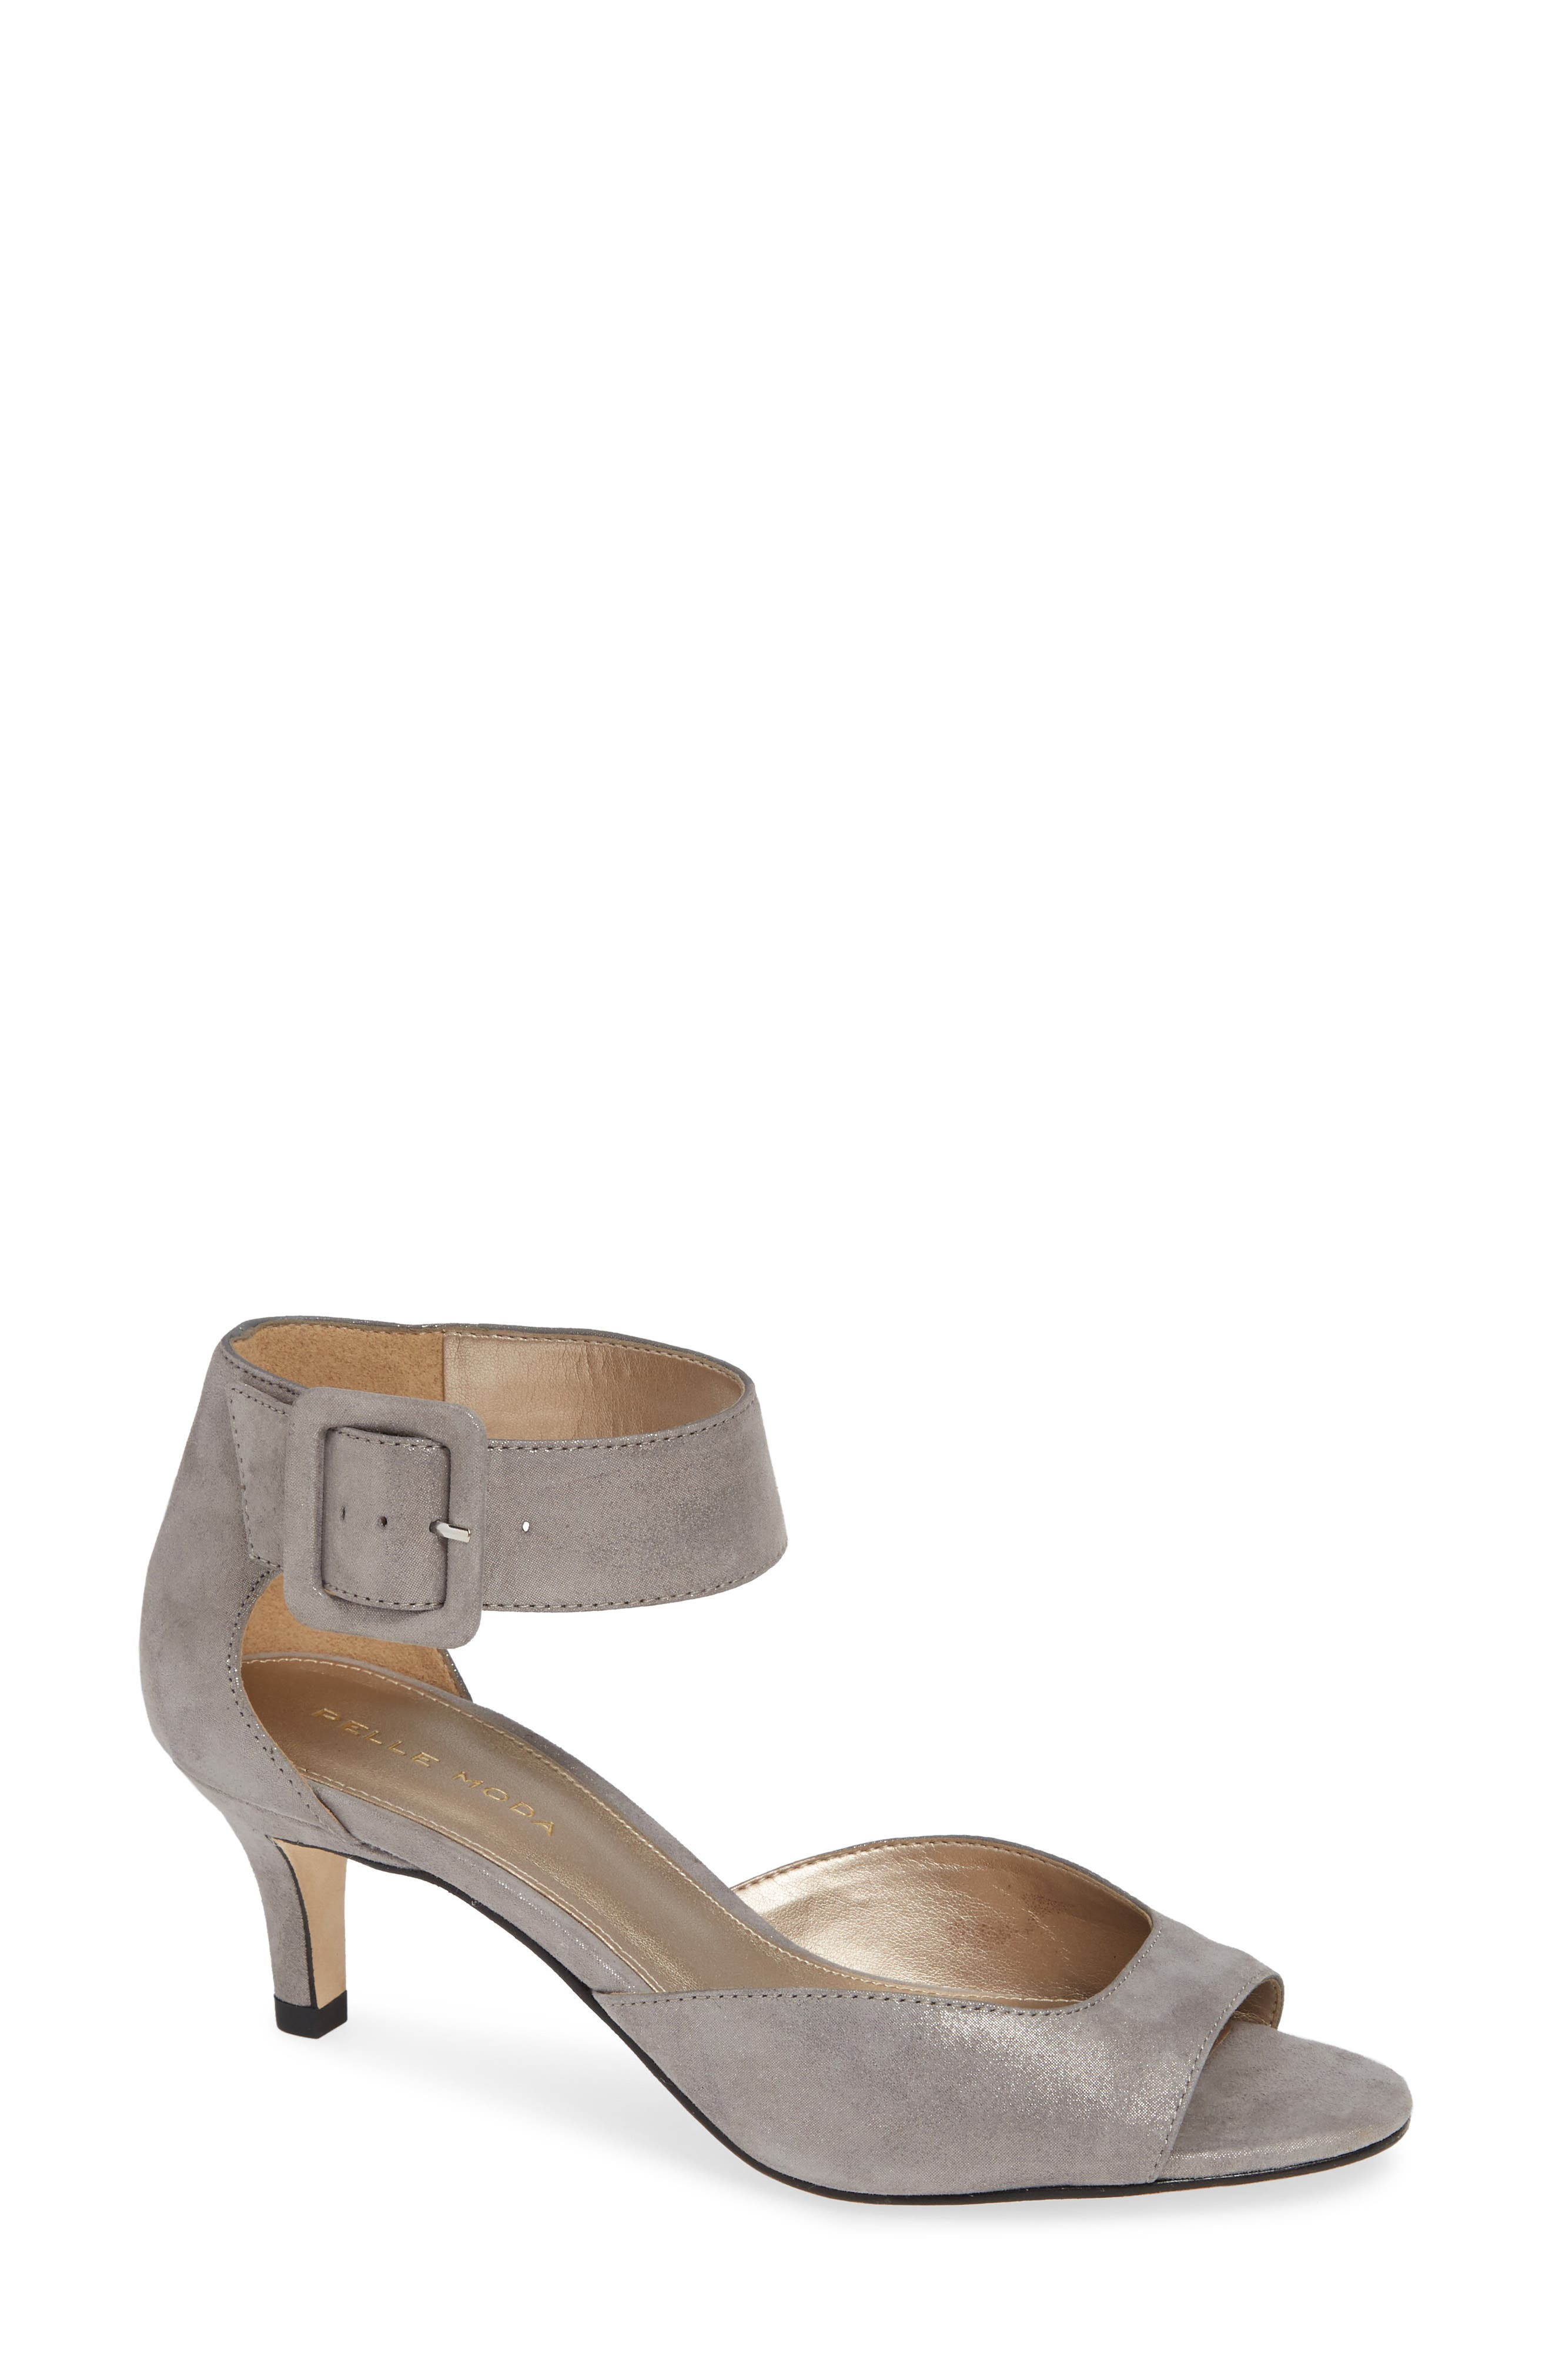 'Berlin' Sandal,                         Main,                         color, PEWTER SUEDE